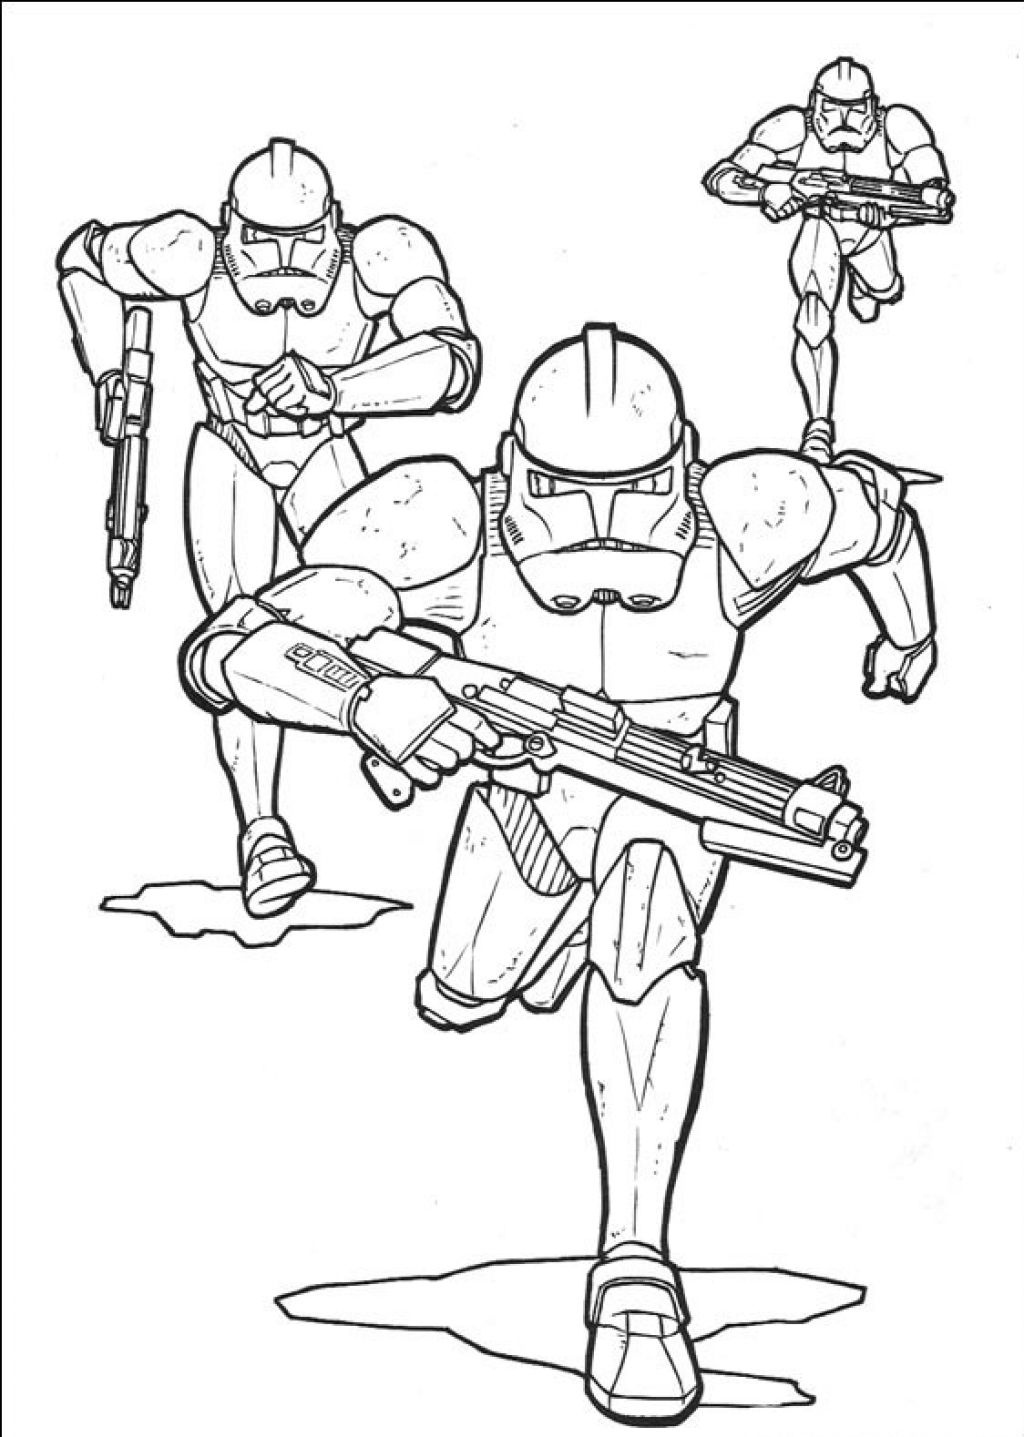 Star Wars Coloring Pages - Free Printable Star Wars Coloring Pages - Free Printable Star Wars Coloring Pages